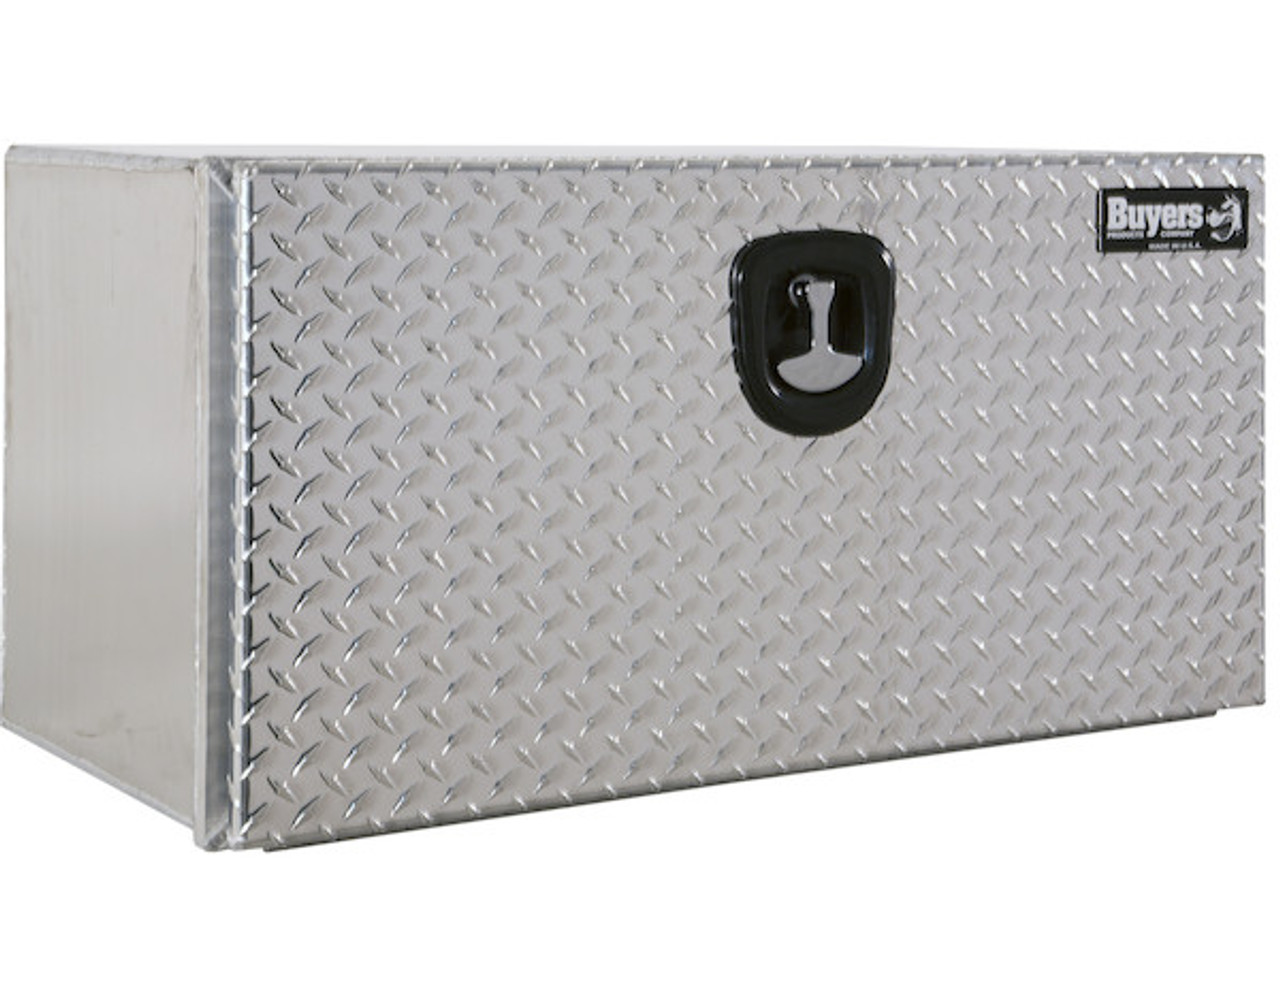 "1706515 BUYERS PRODUCTS XD SMOOTH ALUMINUM UNDERBODY TRUCK TOOLBOX WITH DIAMOND TREAD DOOR 18""HX18""DX60""W"